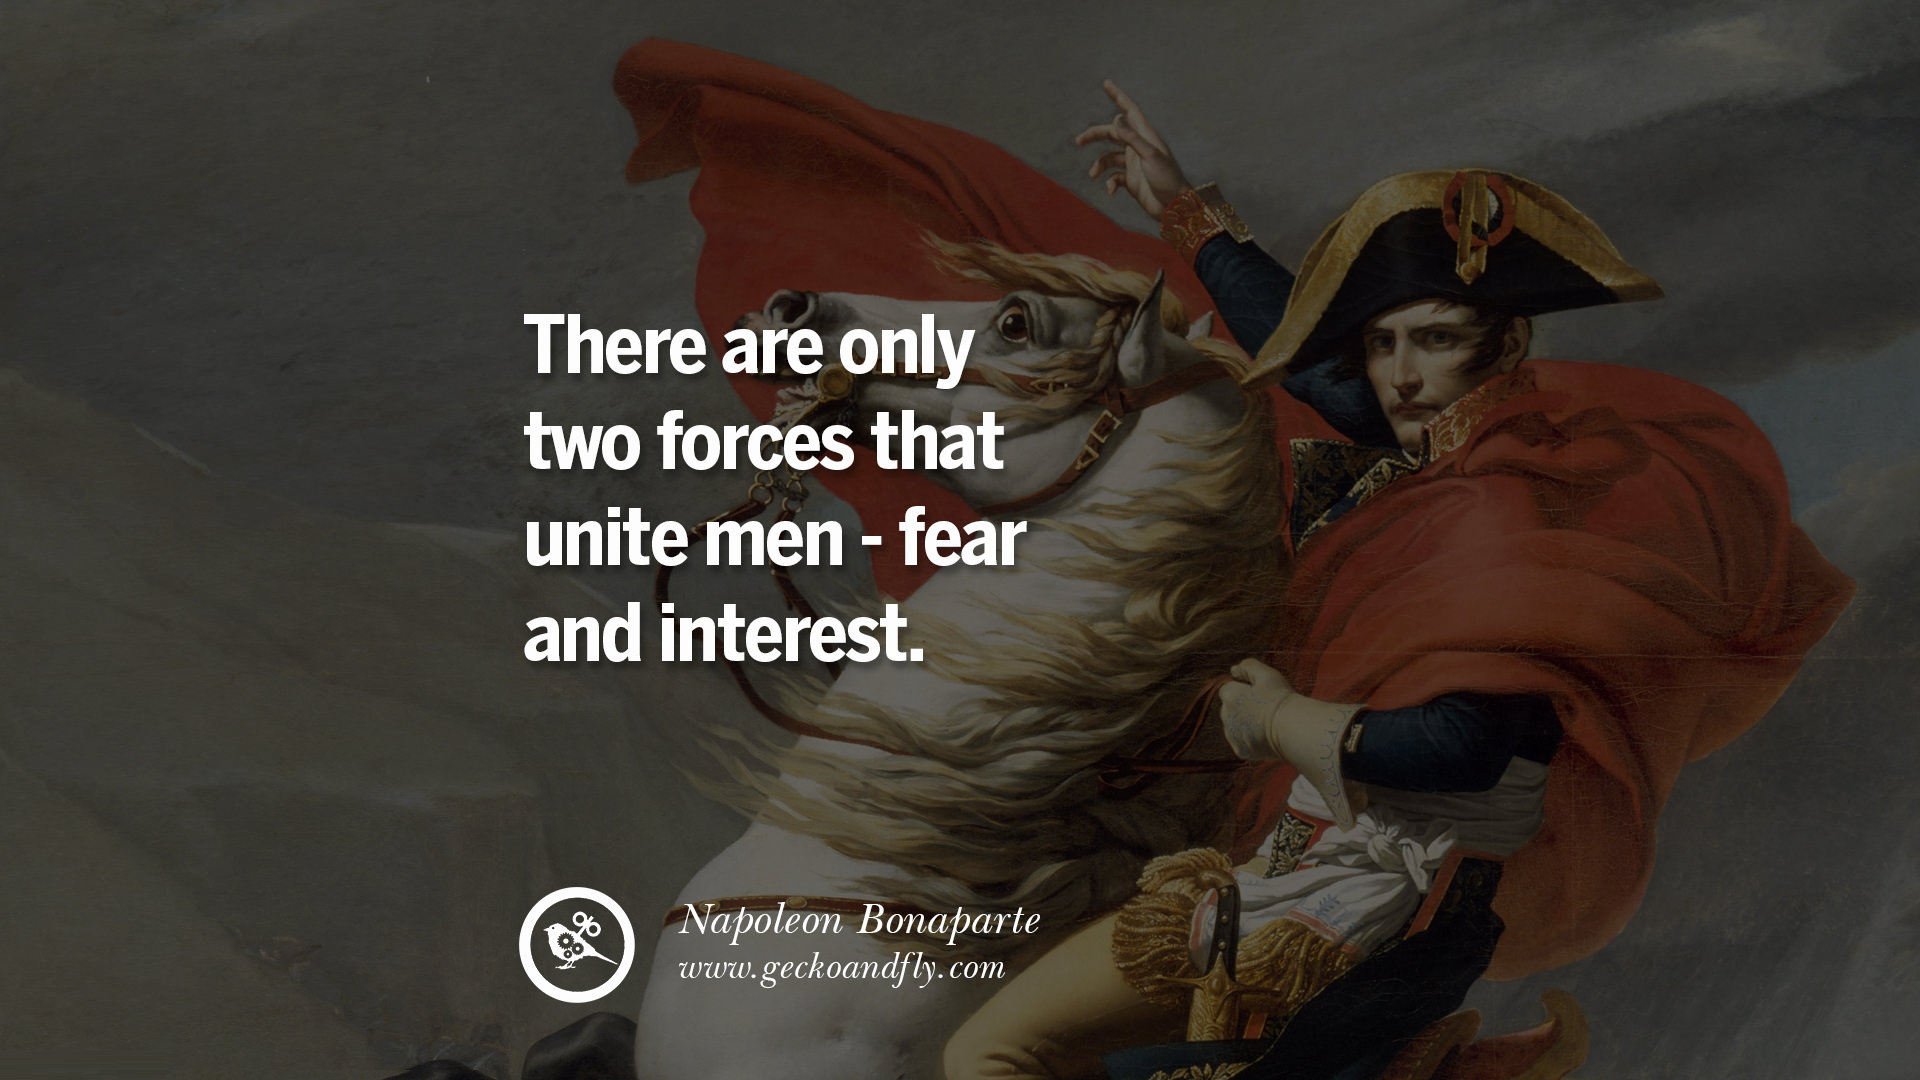 napoleon bonapart quotes Napoleon bonaparte: were you guys like friends in college and now just afraid to  ruin your relationship with each other by telling the other.